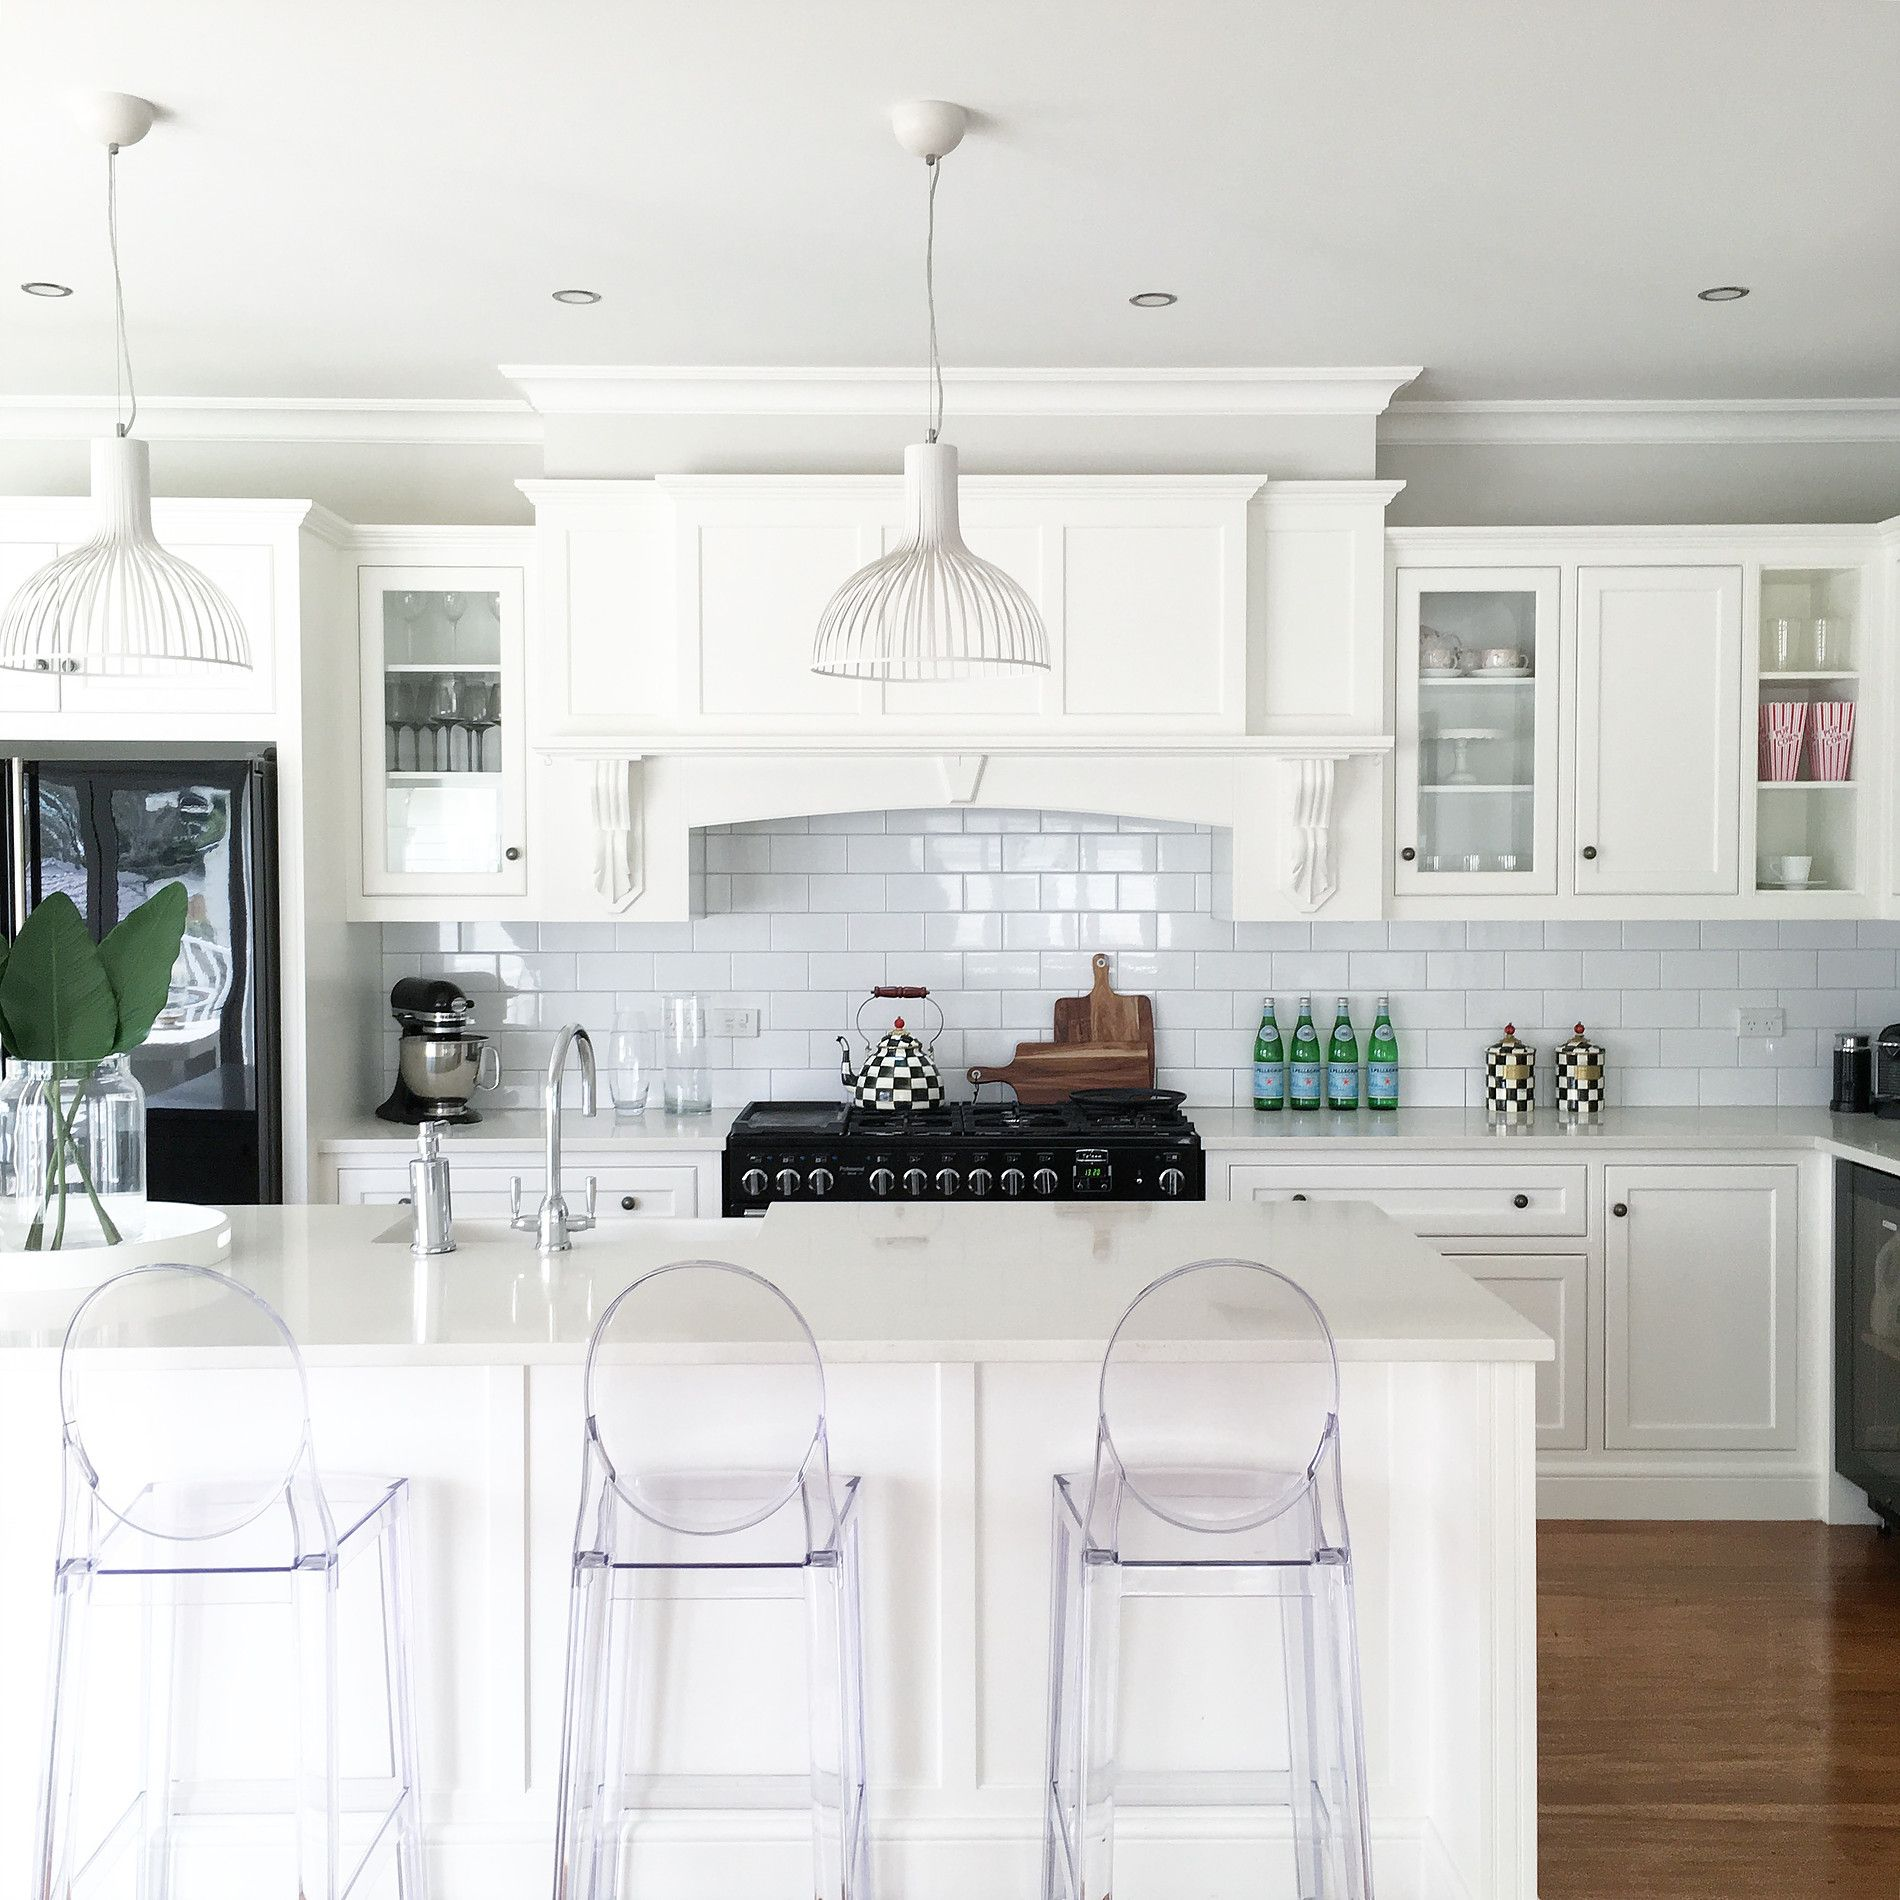 Villa Homes Design Traditional English-style Kitchens That